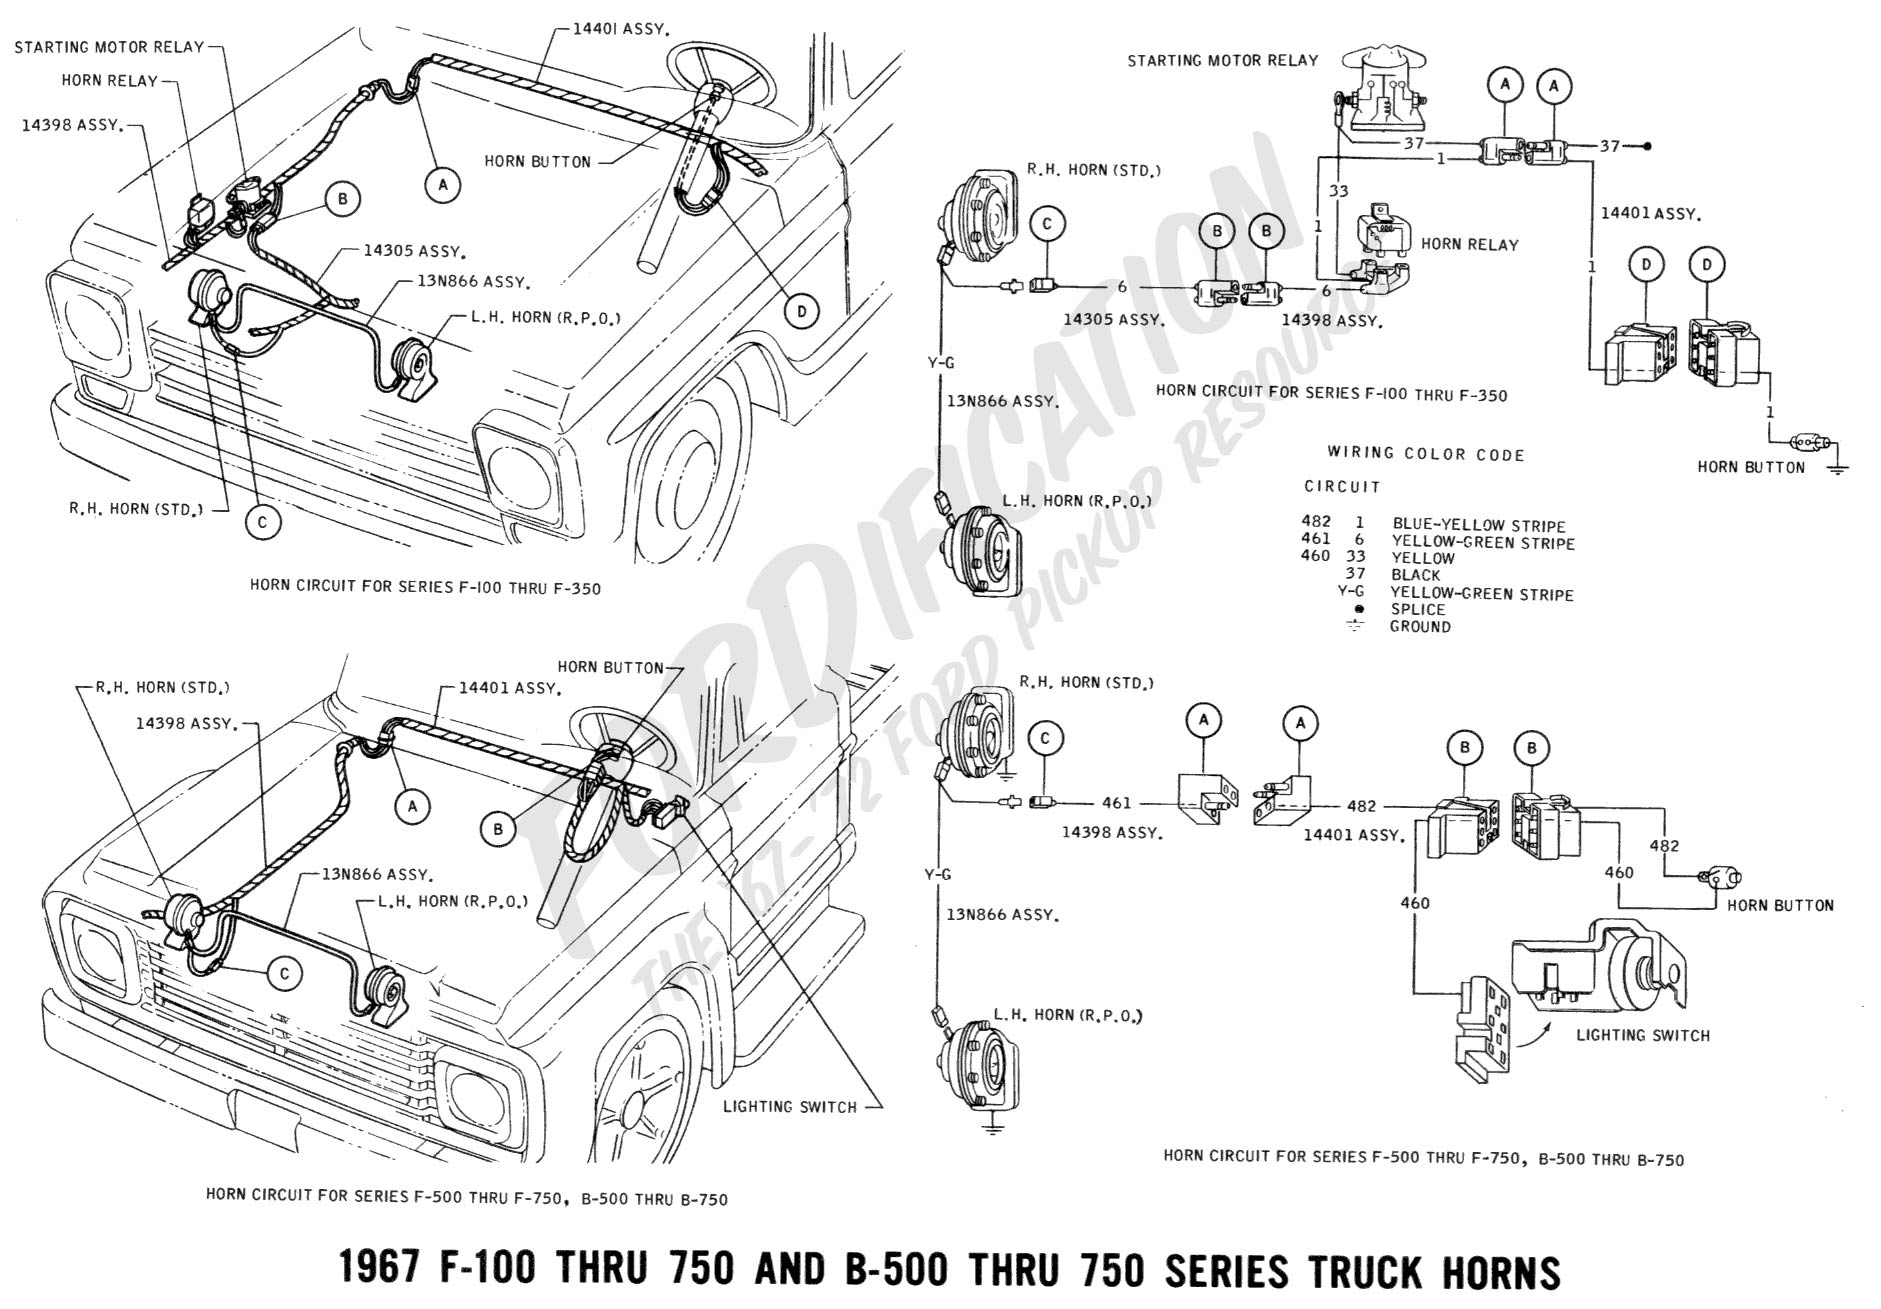 1968 Mustang Ignition Switch Wiring on wiring diagram 1958 studebaker